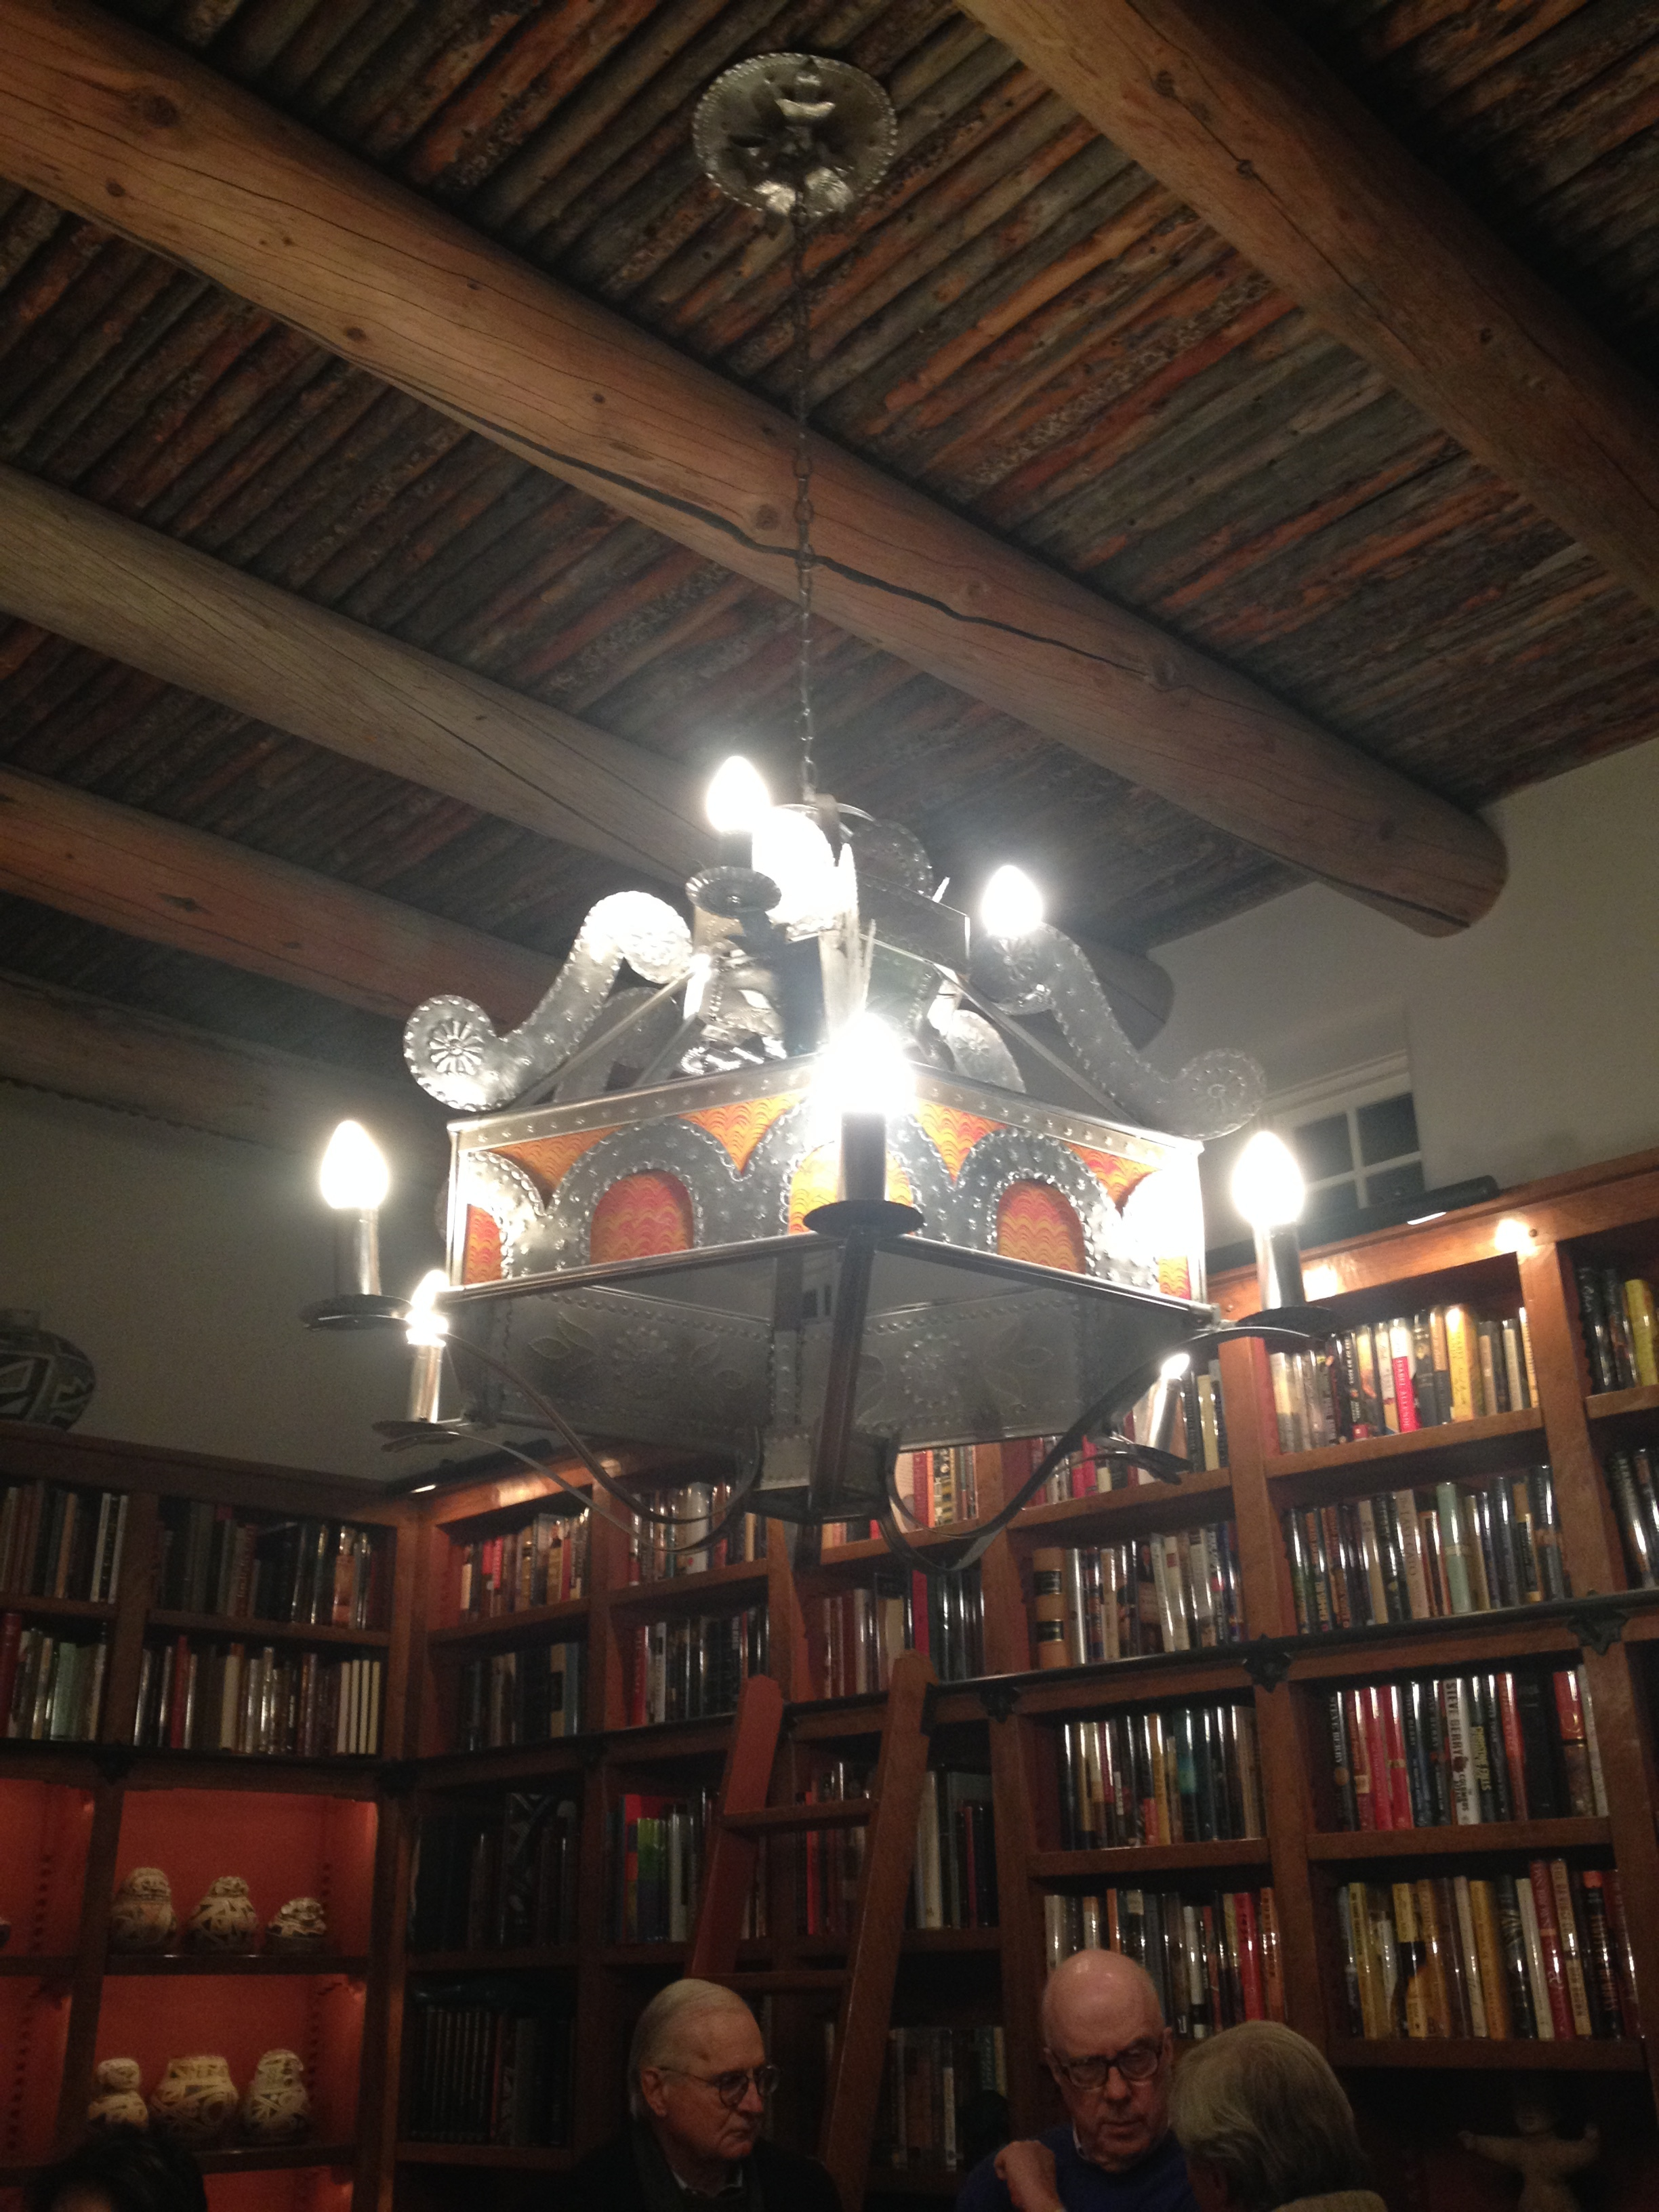 Maurice Dixon tinwork in Roque Lobato Library for Winter Stewards Event, December 2015